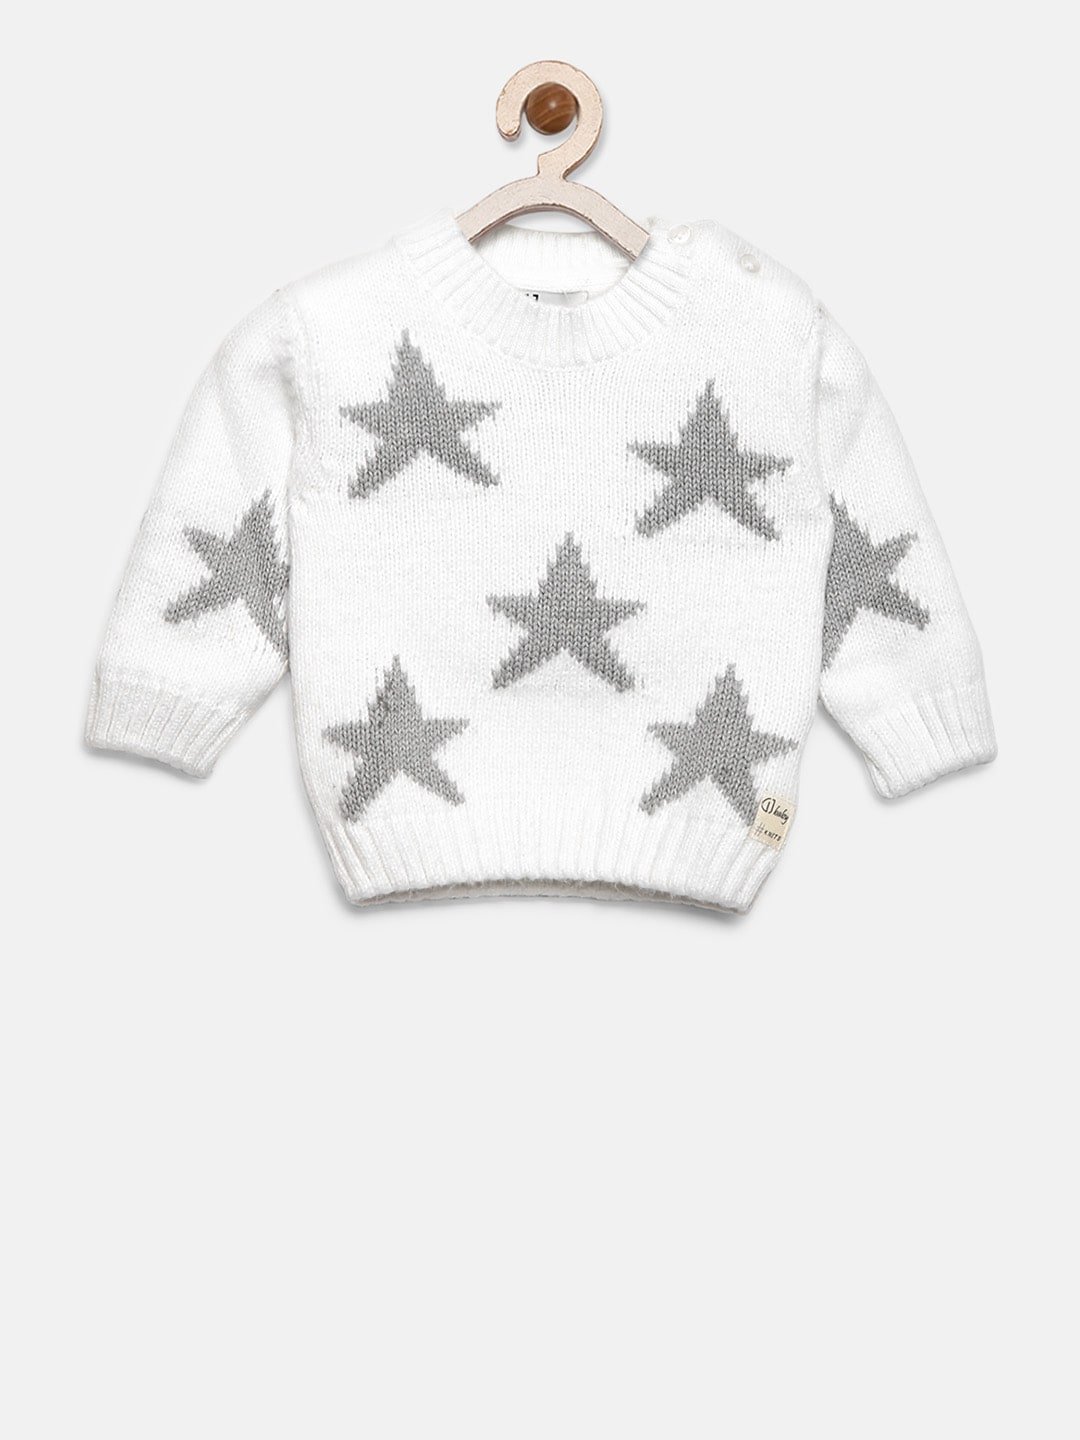 27d1ef8122f6 Mango Sweaters And Jackets - Buy Mango Sweaters And Jackets online in India